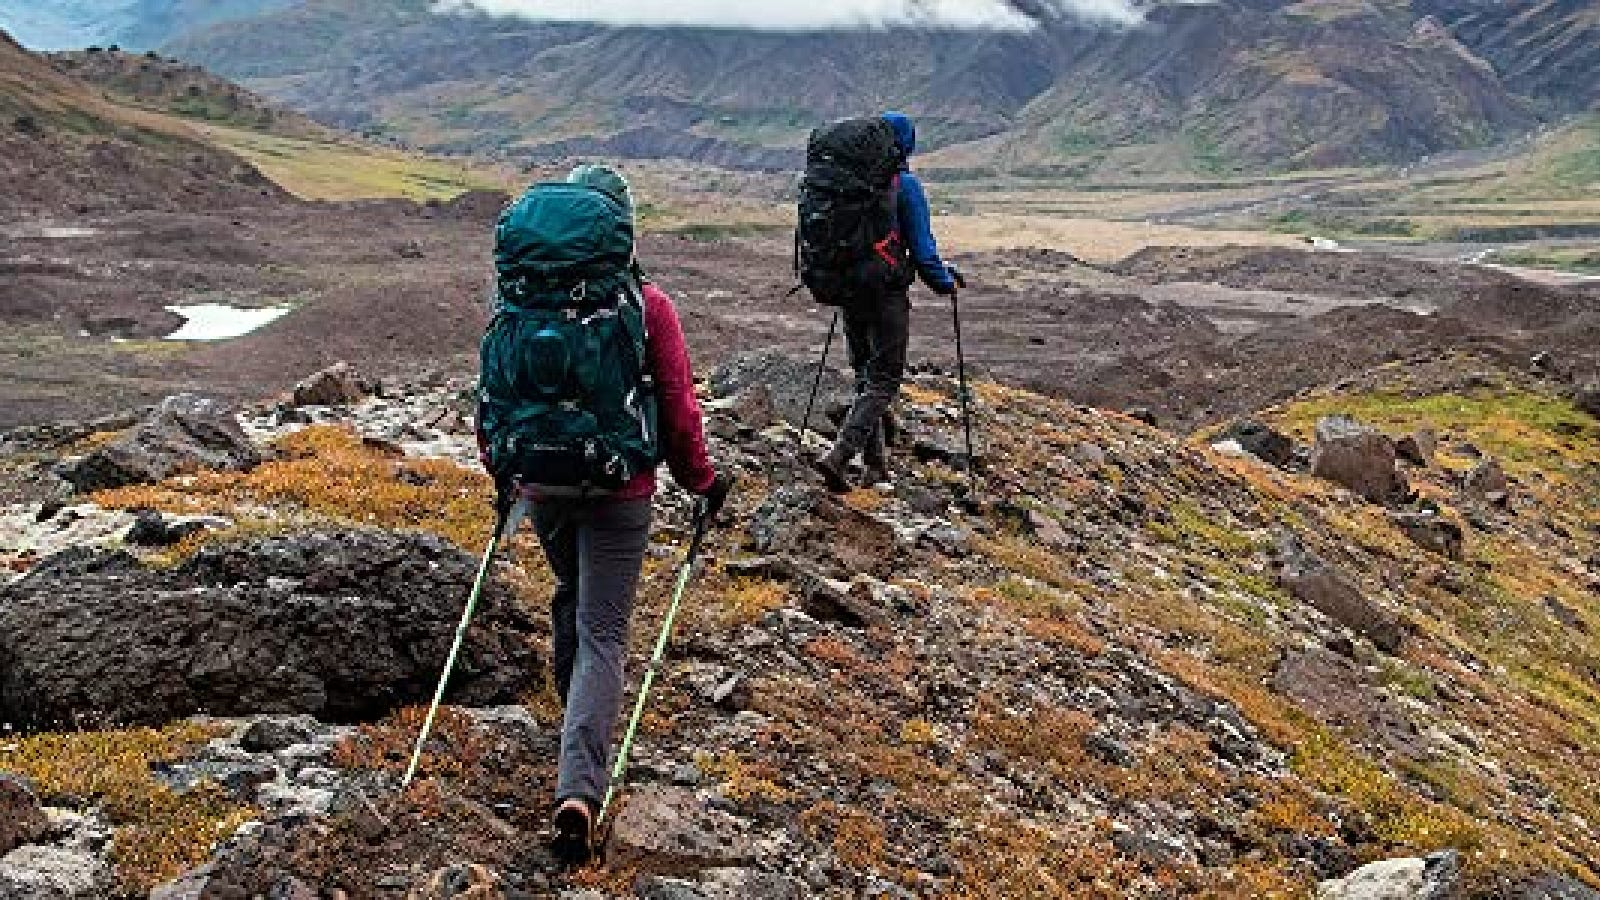 Two hikers hiking along the ridge of a trail while wearing their hiking packs.